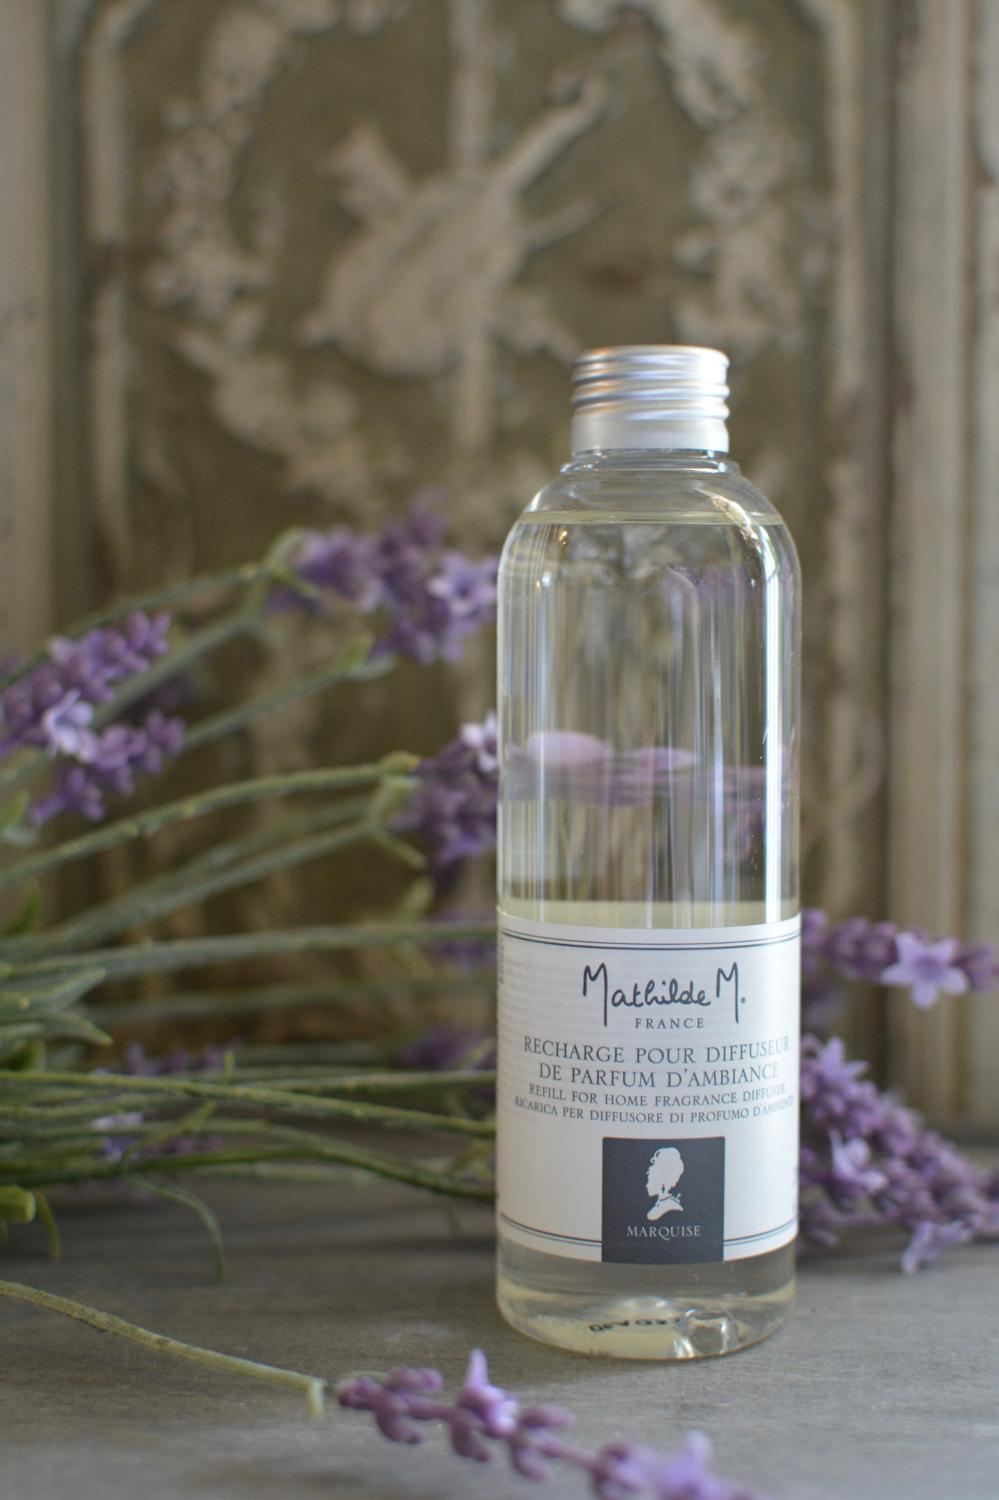 Mathilde M. Marquise Diffuser Refill